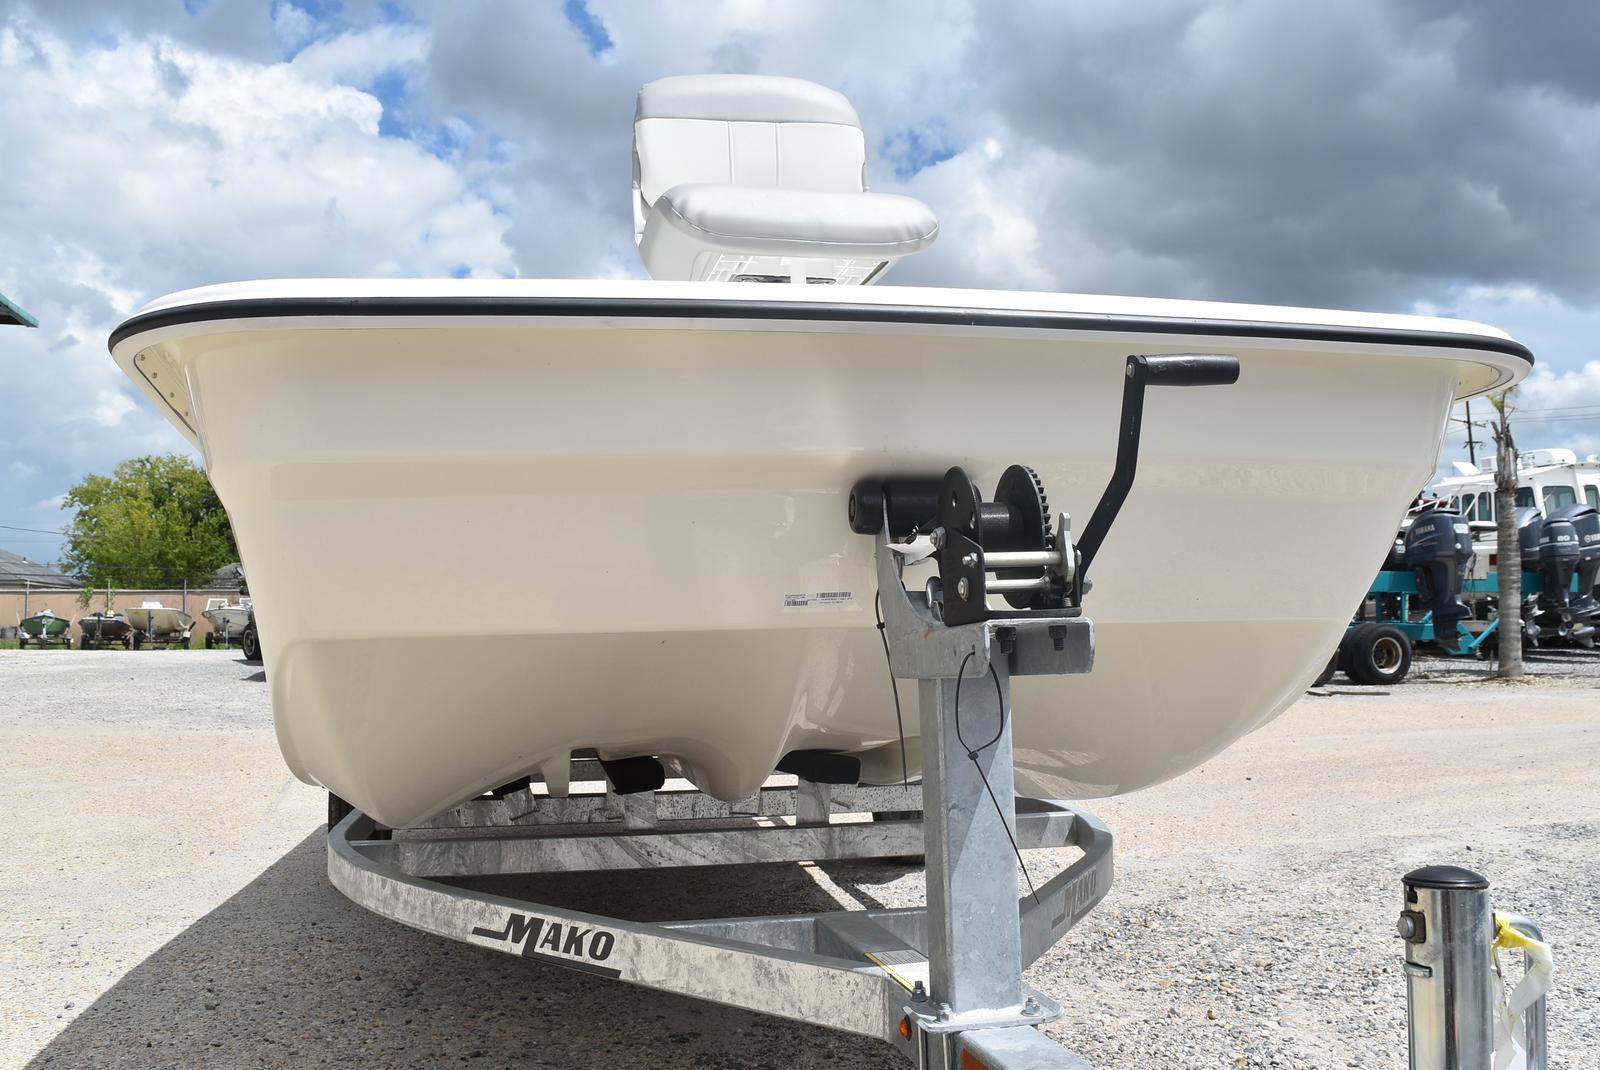 2020 Mako boat for sale, model of the boat is Pro Skiff 17, 75 ELPT & Image # 361 of 702